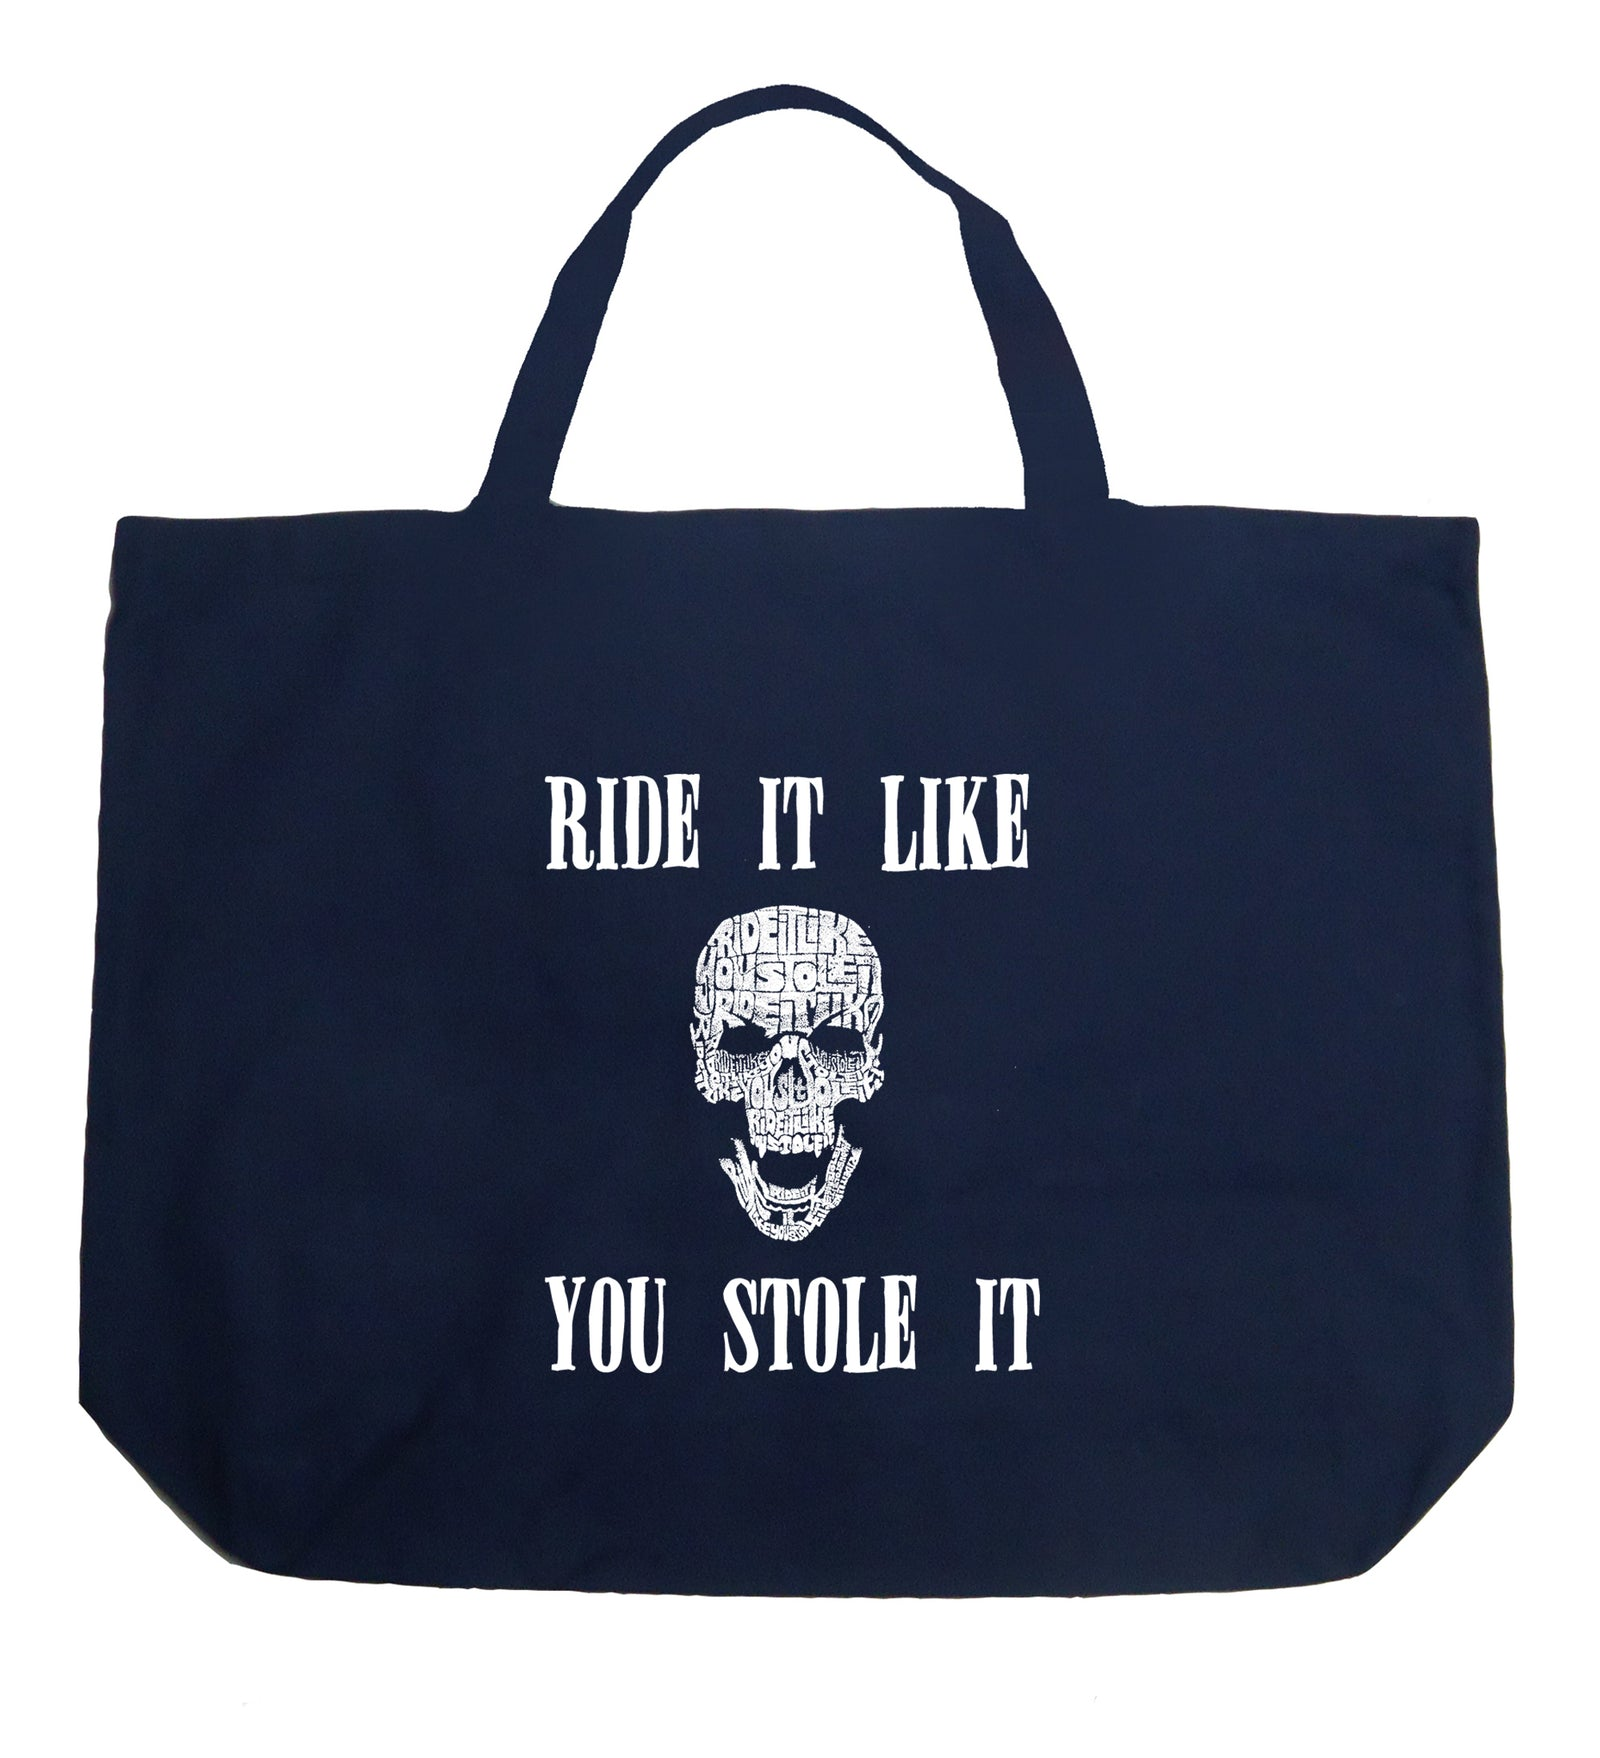 Large Word Art Tote Bag - Ride It Like You Stole It